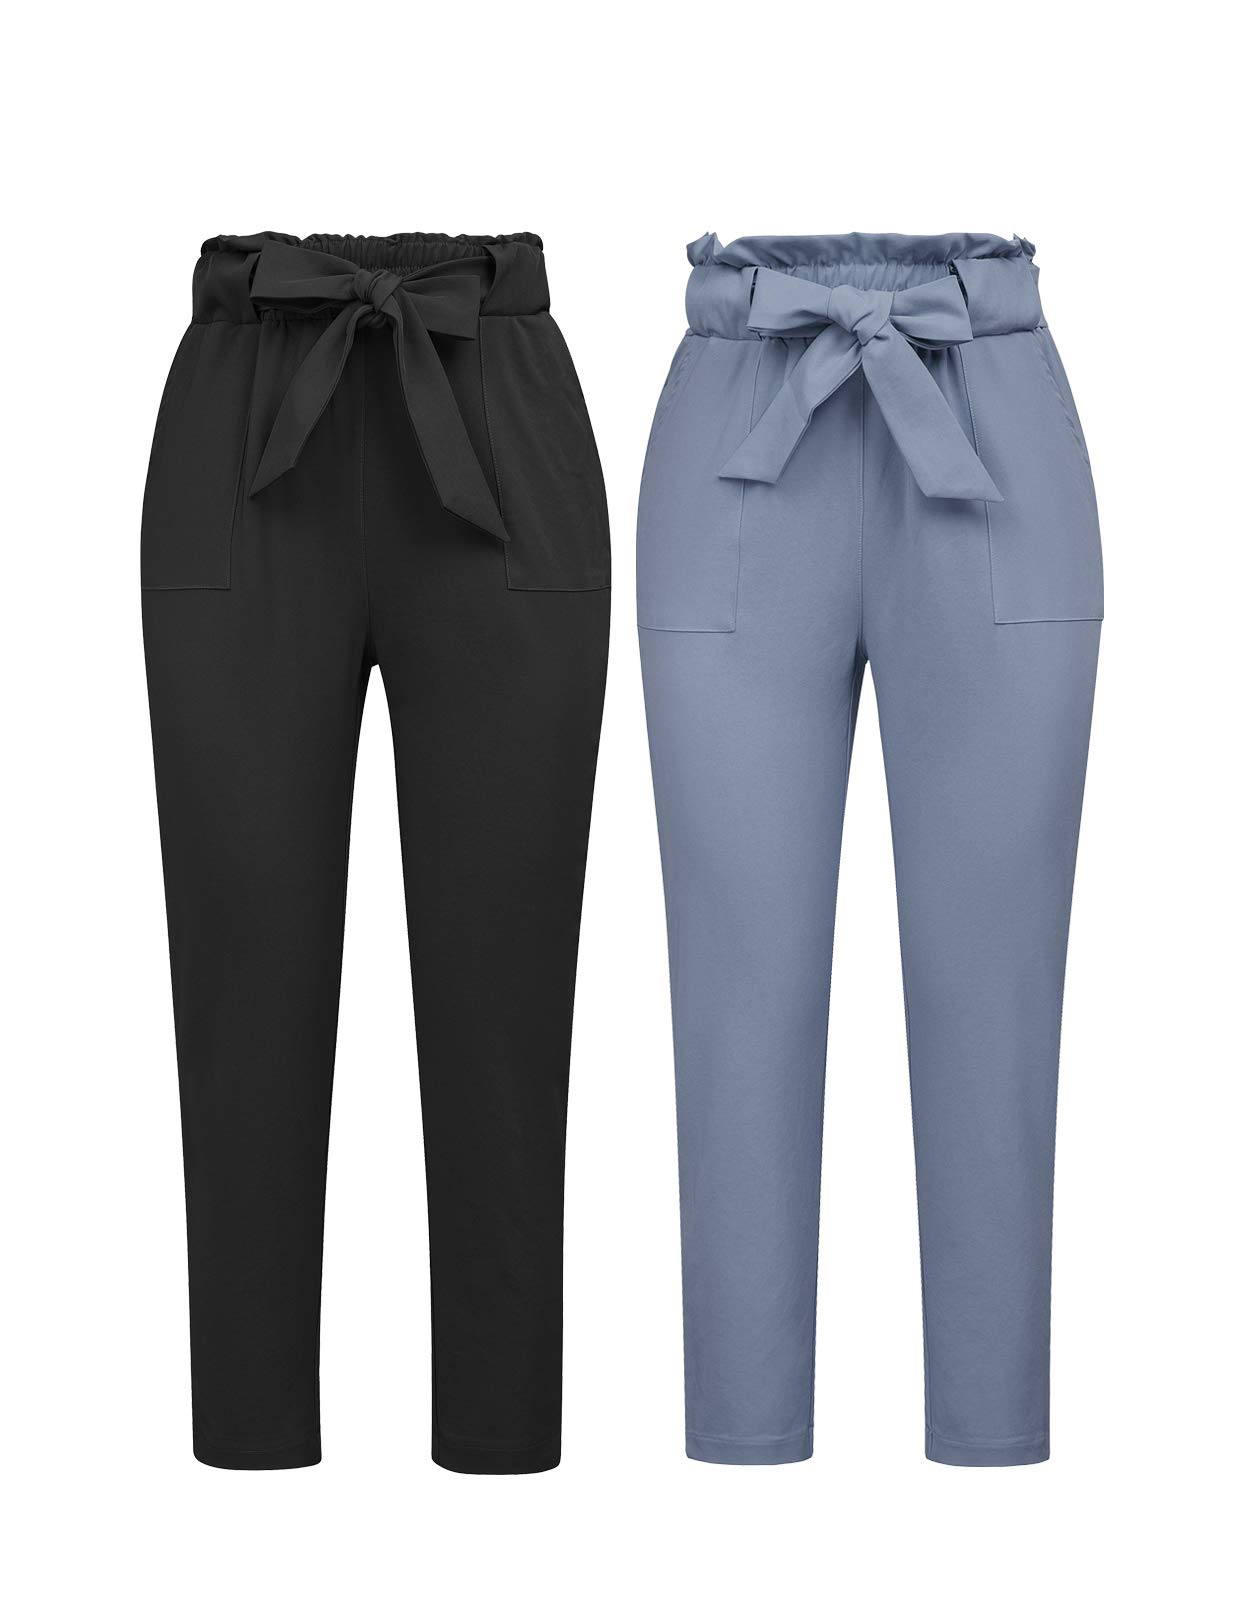 GRACE KARIN Women's Pants Trouser Slim Casual Cropped Paper Bag Waist Pants with Pockets (Small, Black+Blue-Gray)